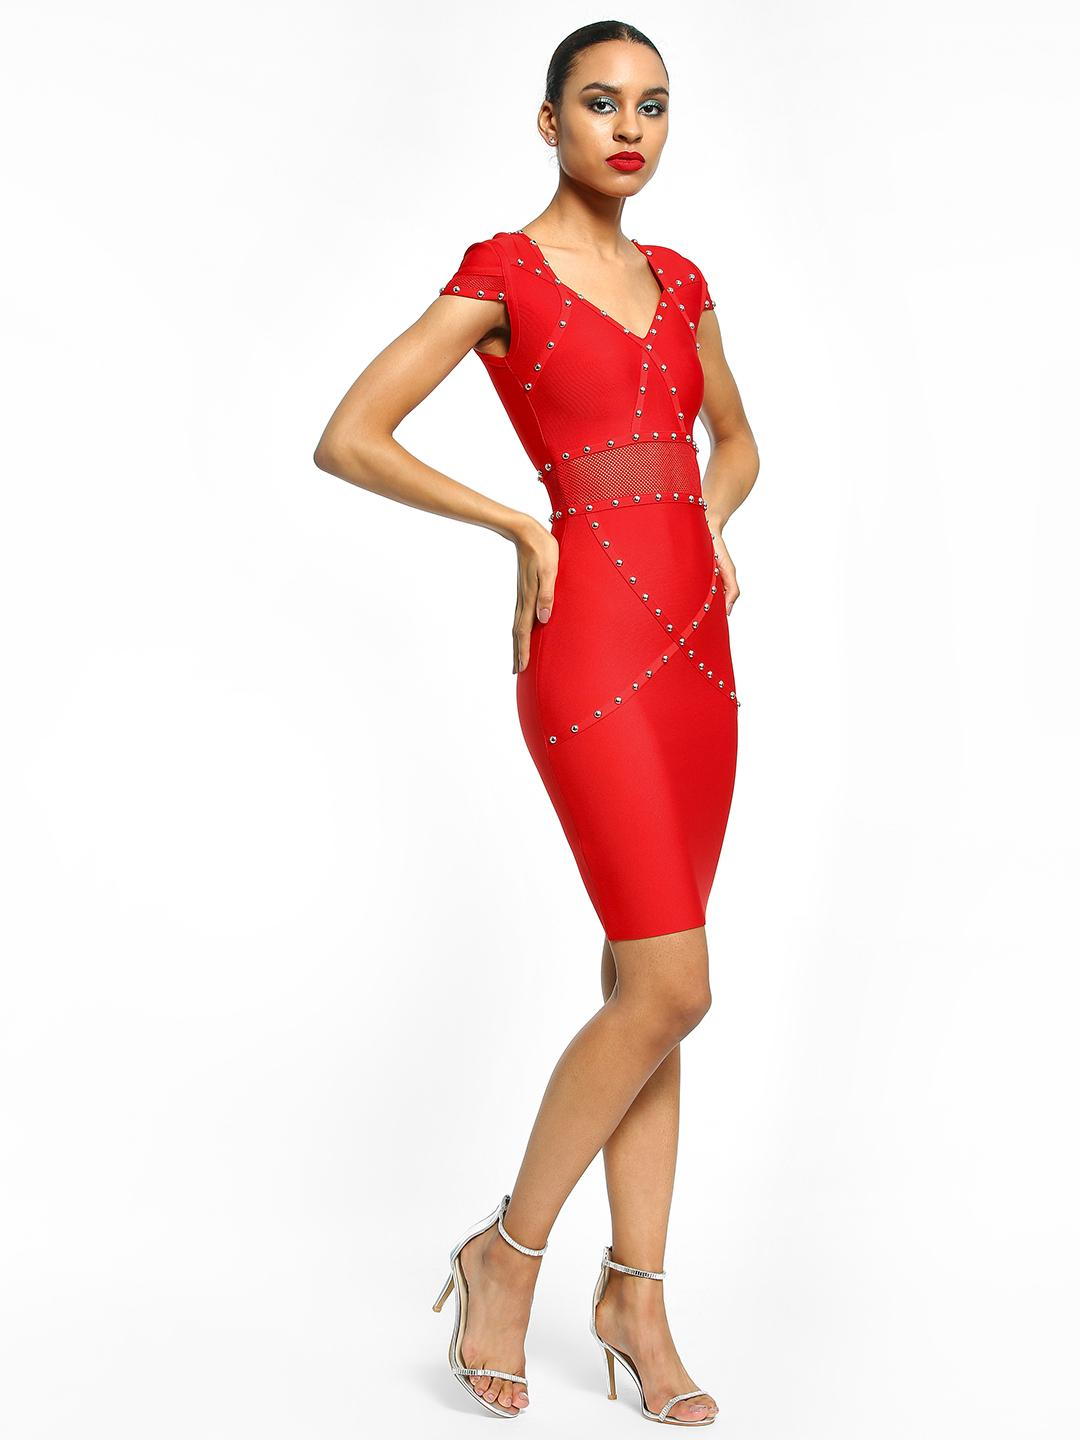 Realty, Lajoly & Co Red Studded Bandage Bodycon Dress 1